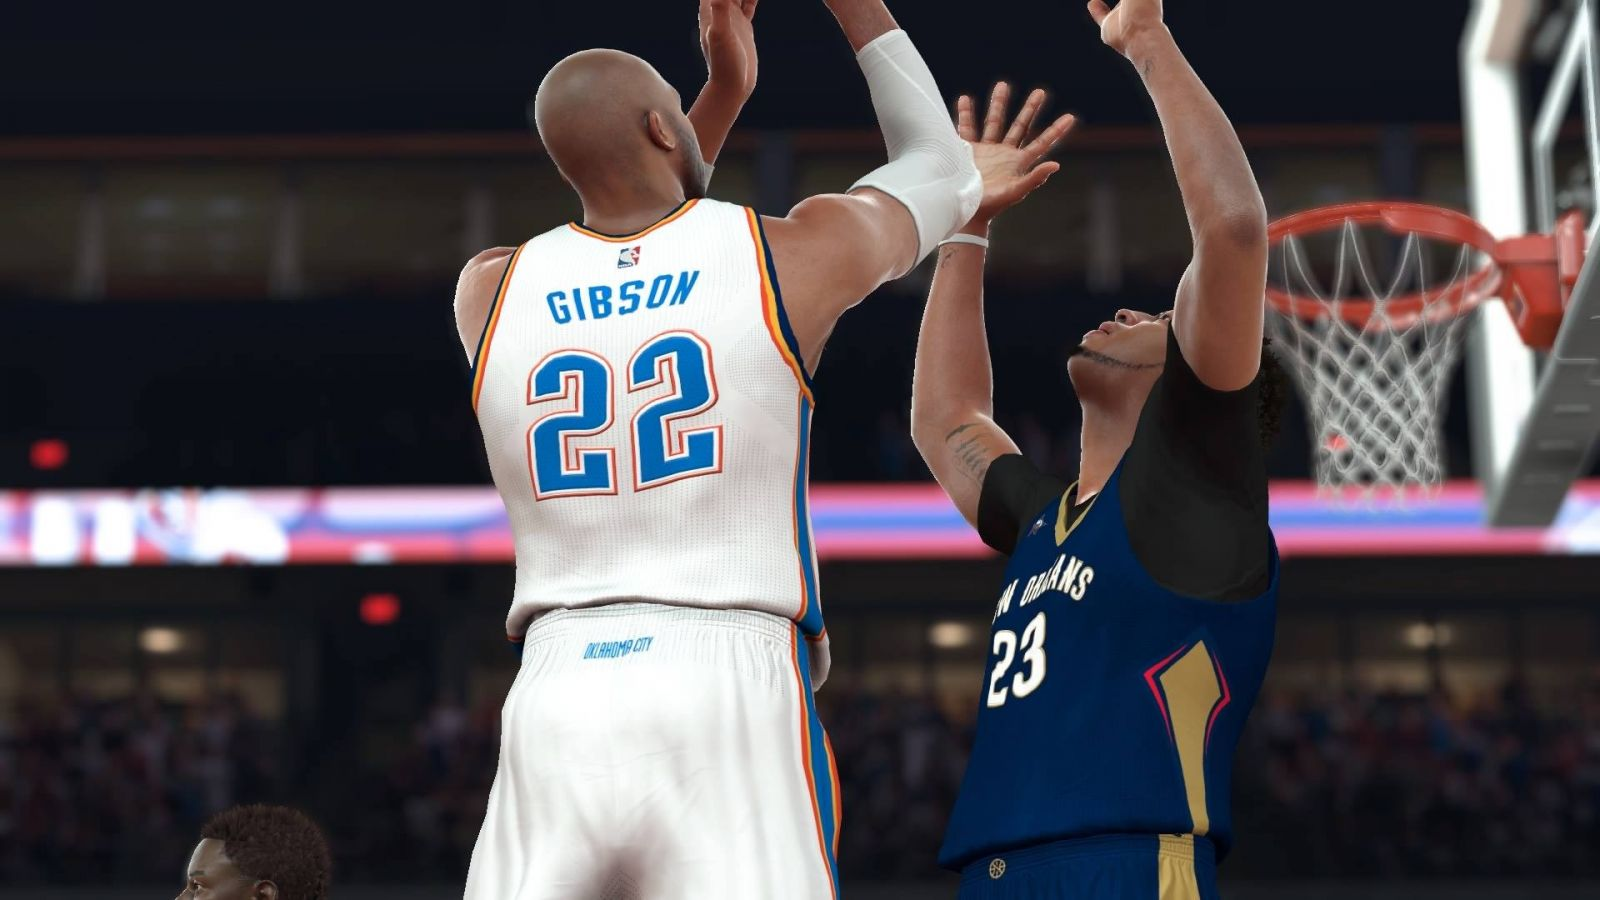 Try New-Look Teams After The NBA 2K17 Trade Ends